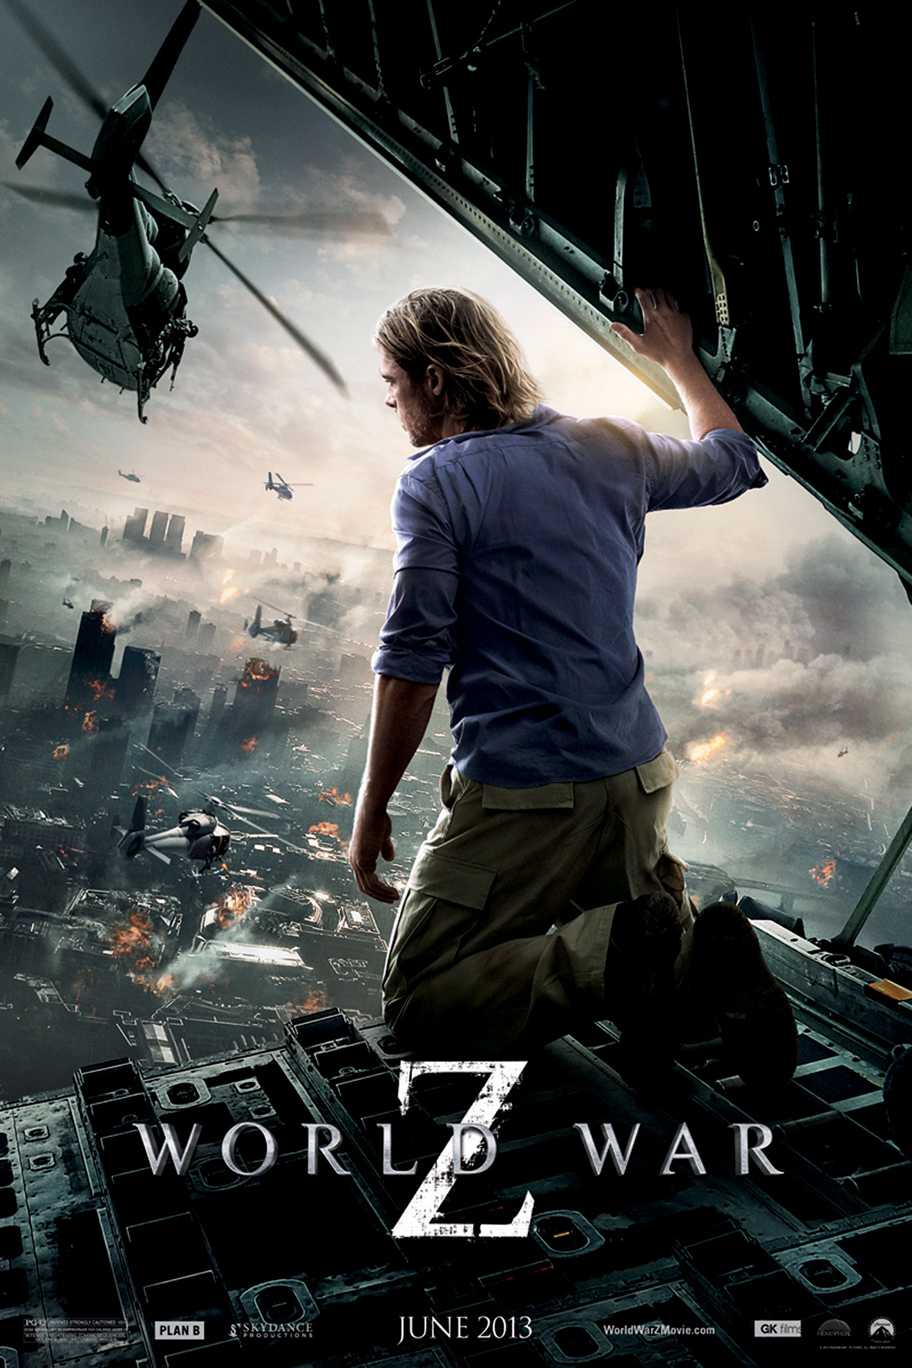 World War Z 3D - 2013-06-21 00:00:00